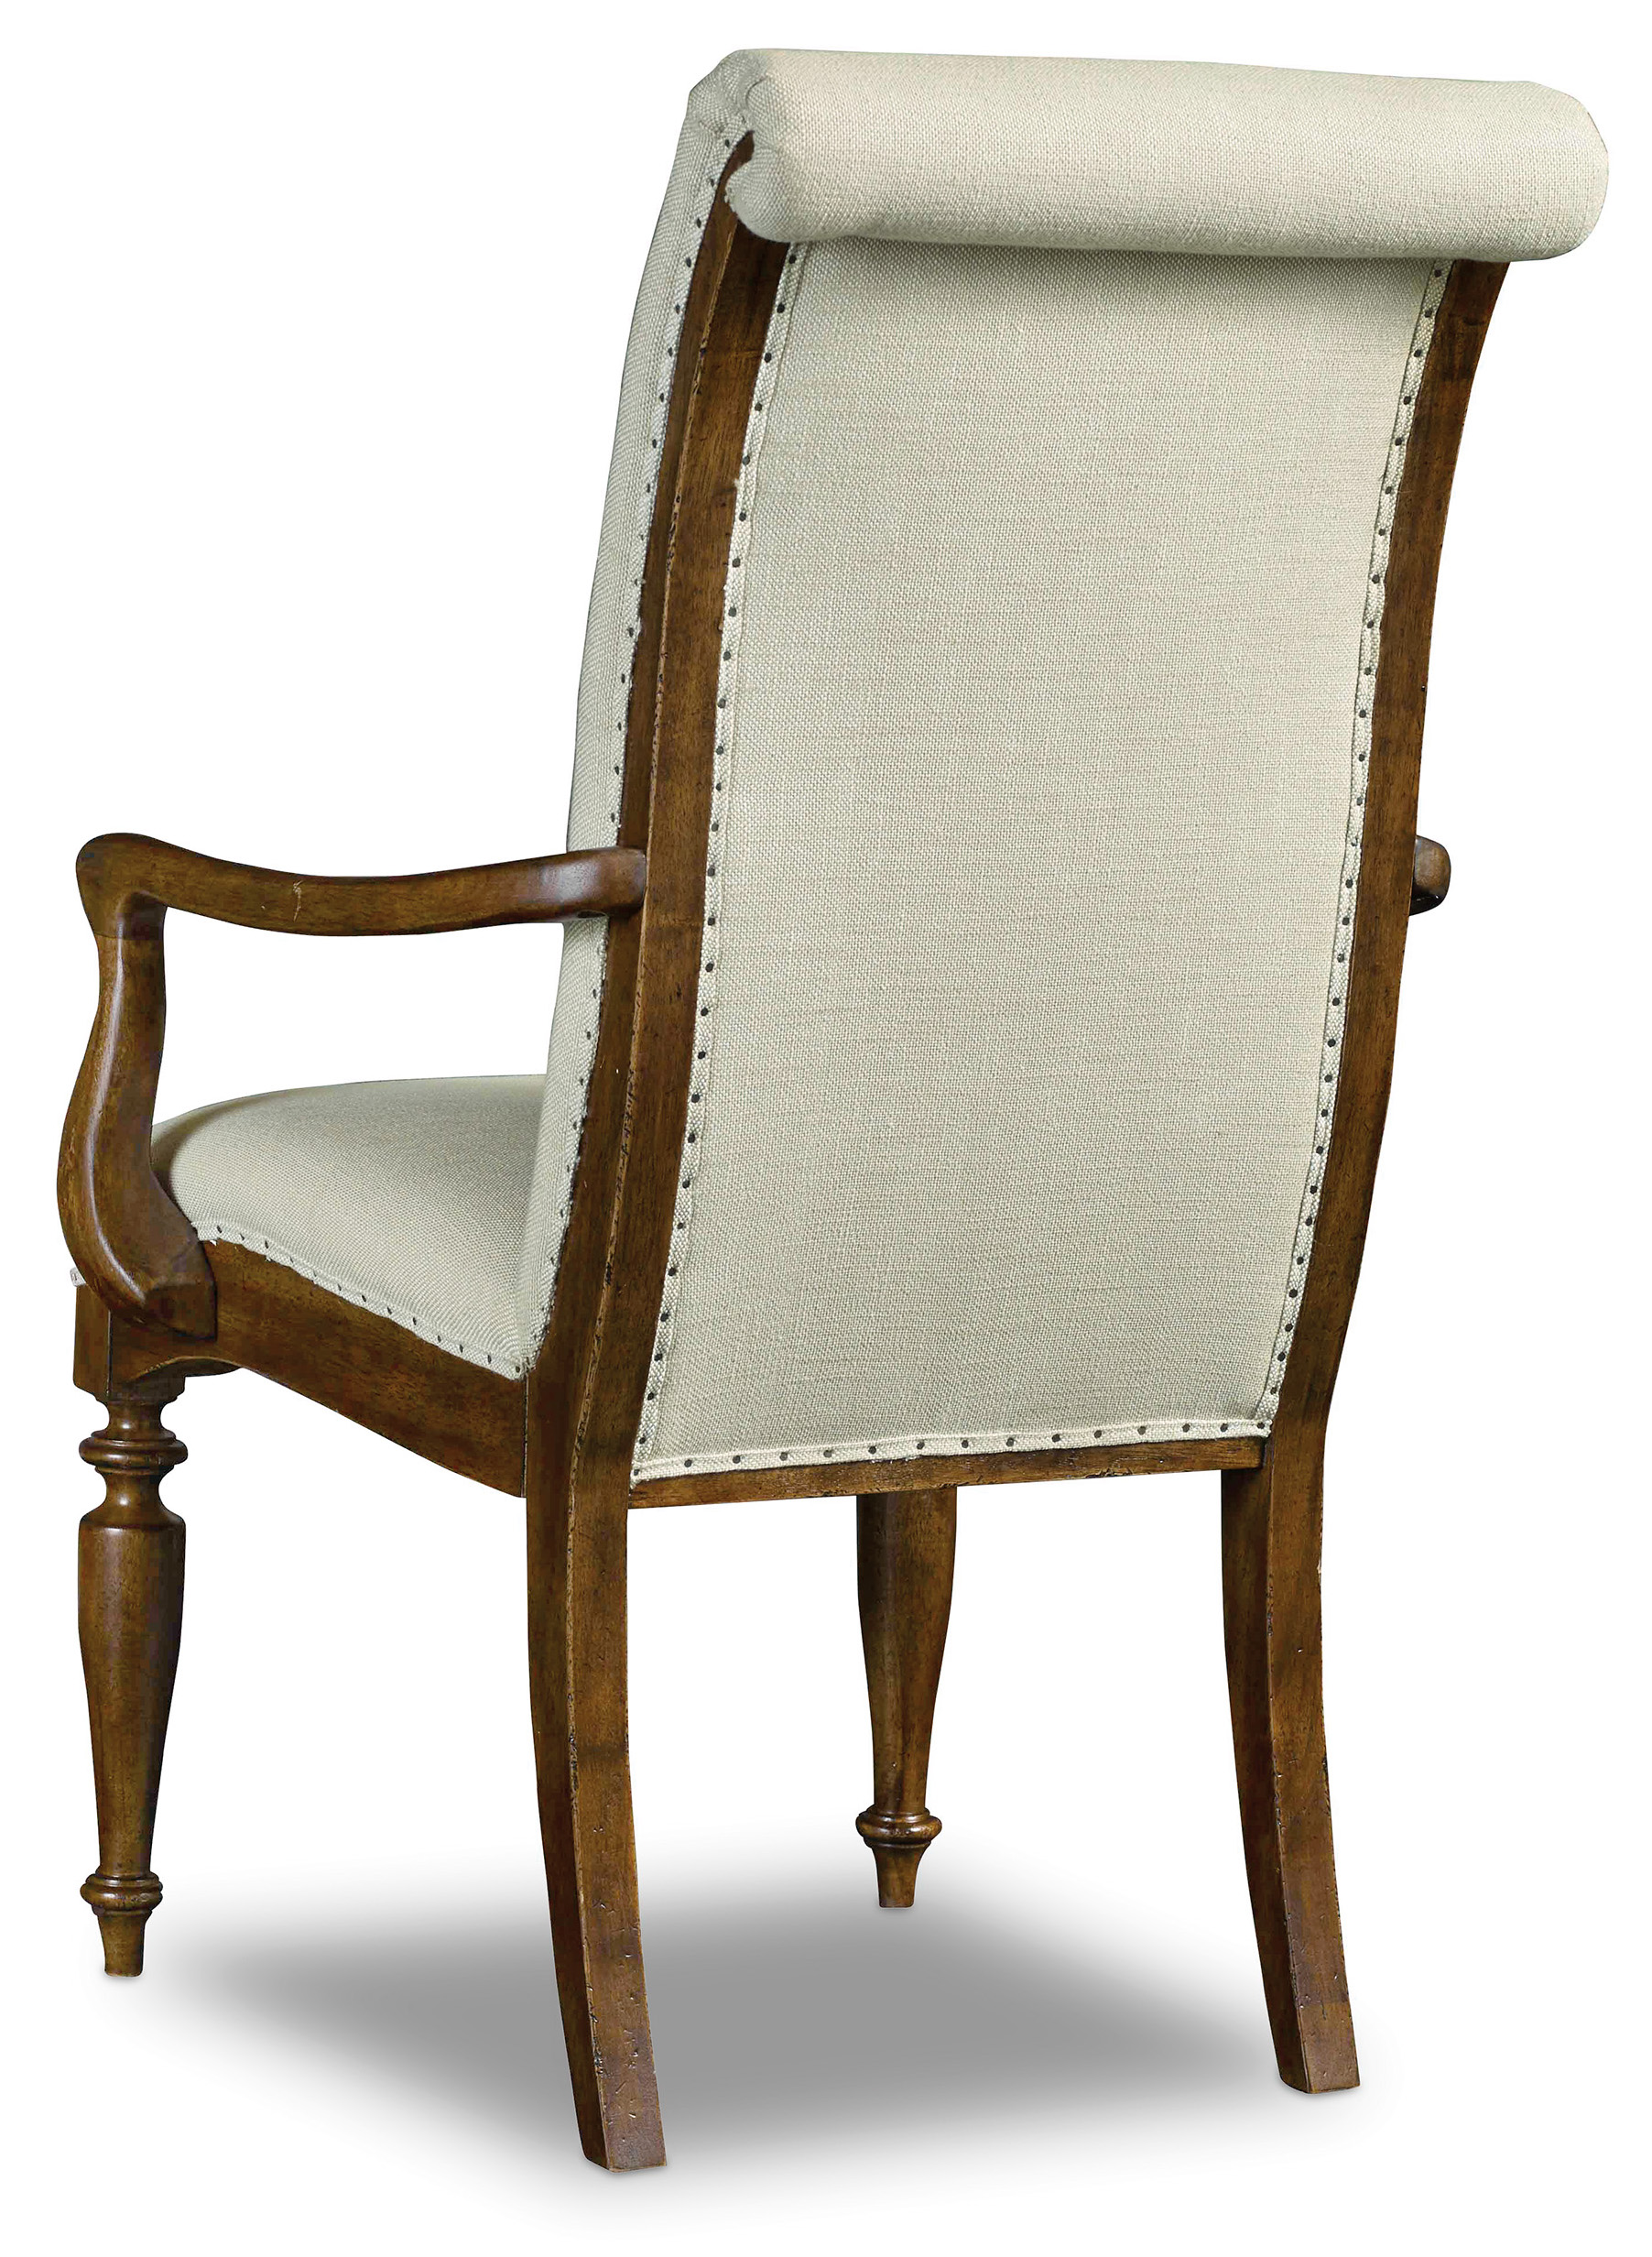 Archivist Upholstered Arm Chair - 2 per carton/price ea